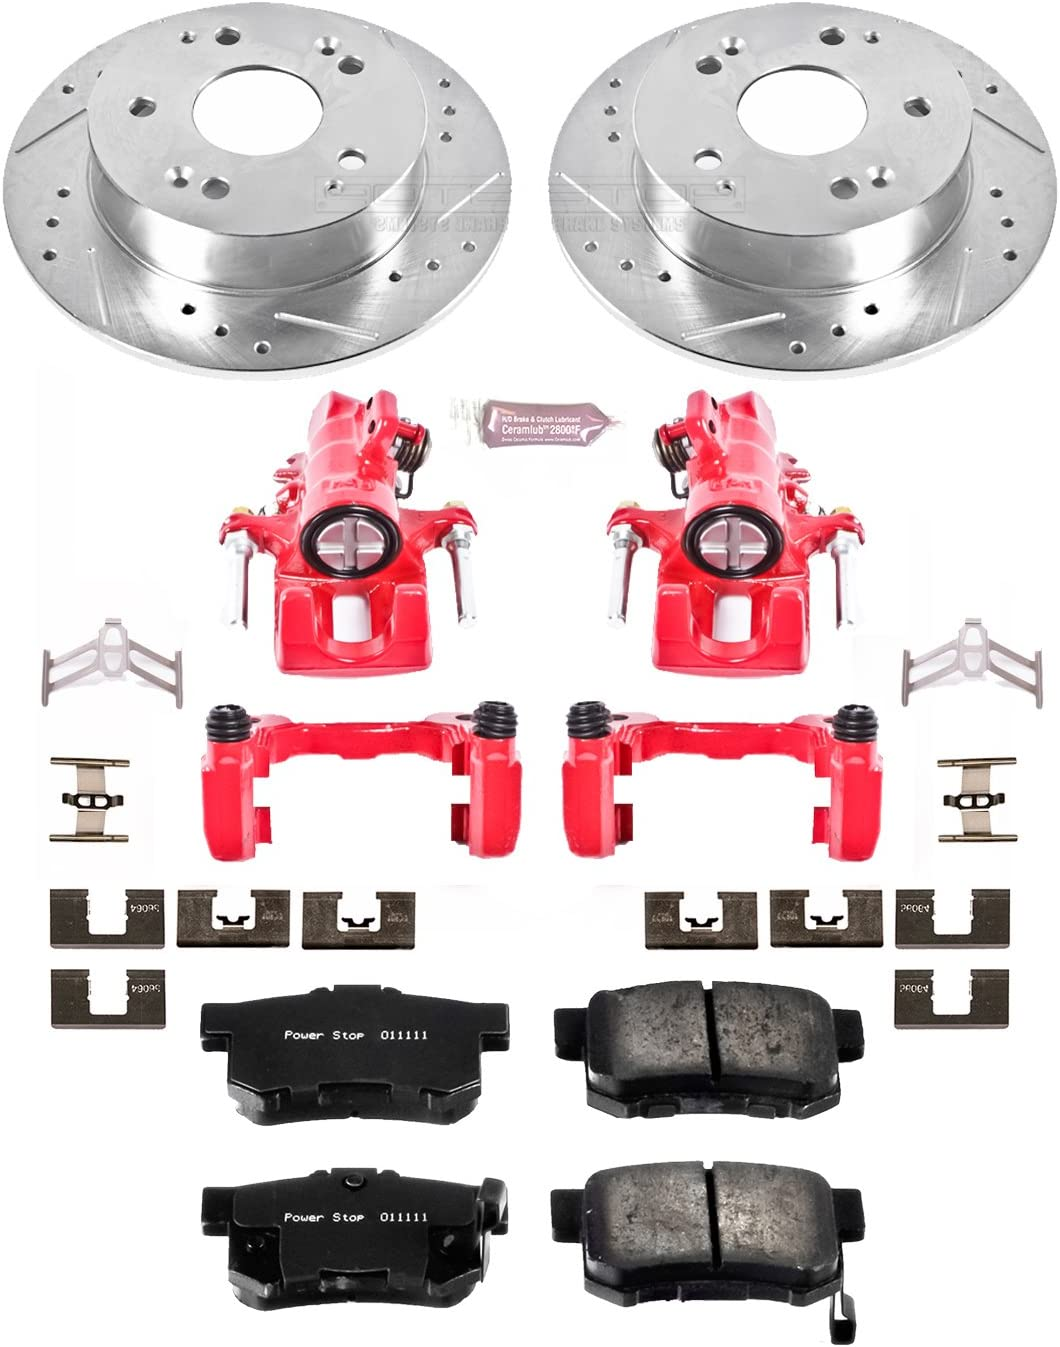 Power Stop KC2270A 1-Click Performance Brake Kit with Caliper Rear Only